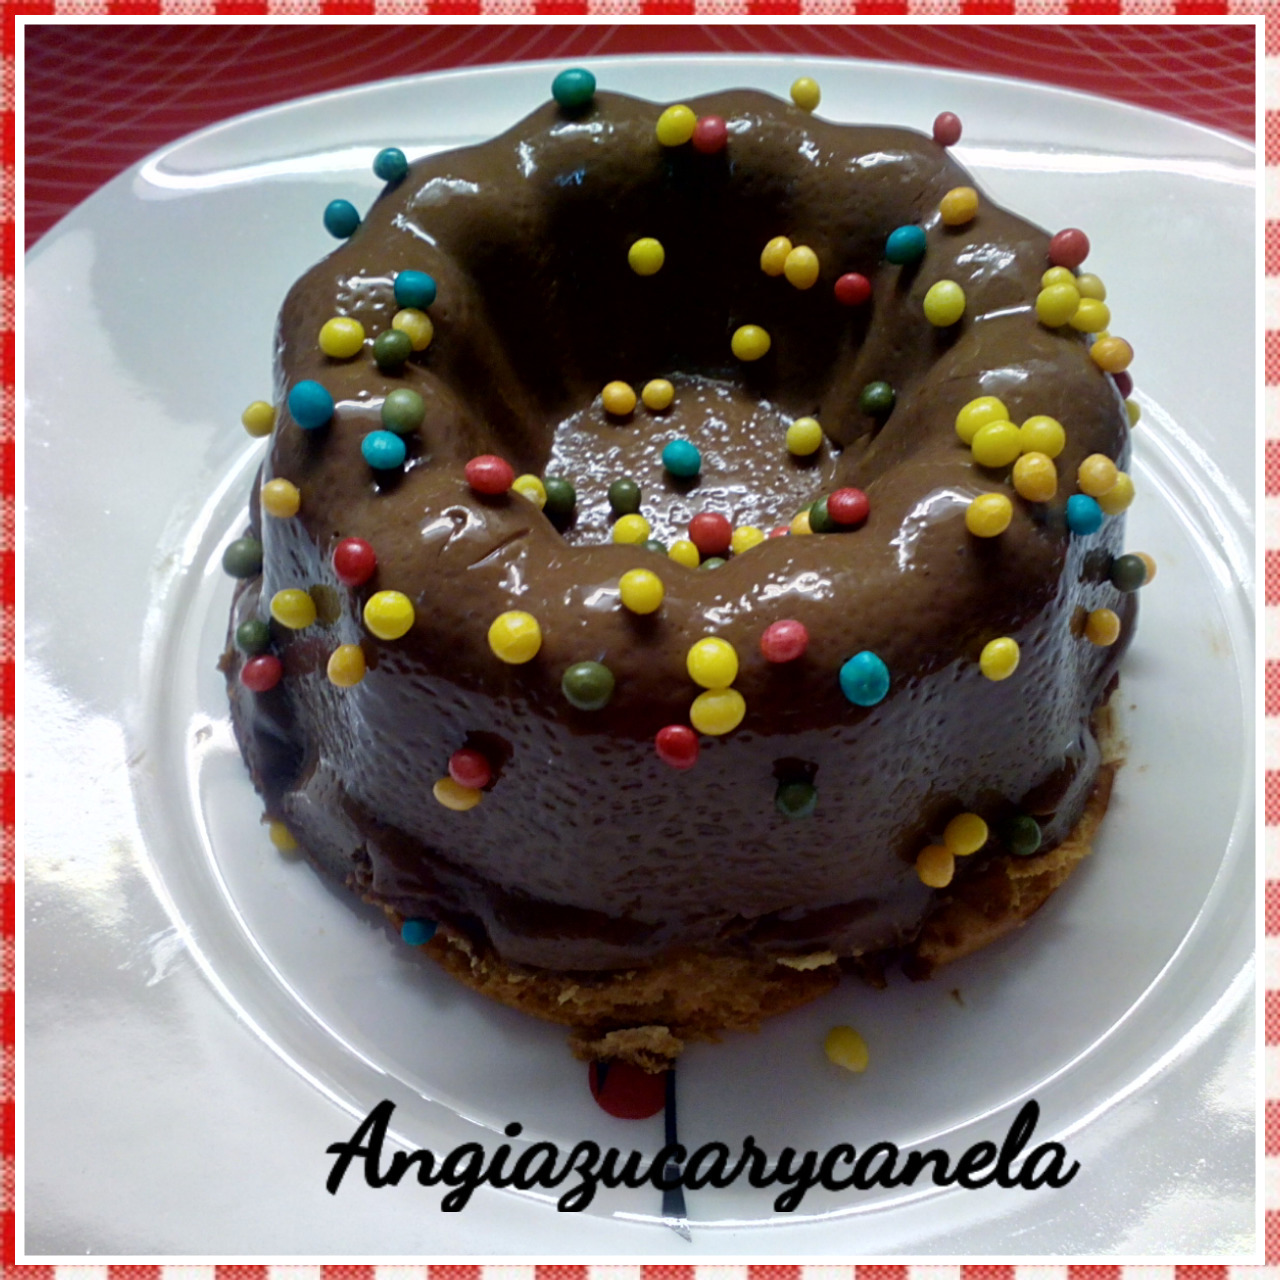 Tarta de Chocolate 1 en Thermomix